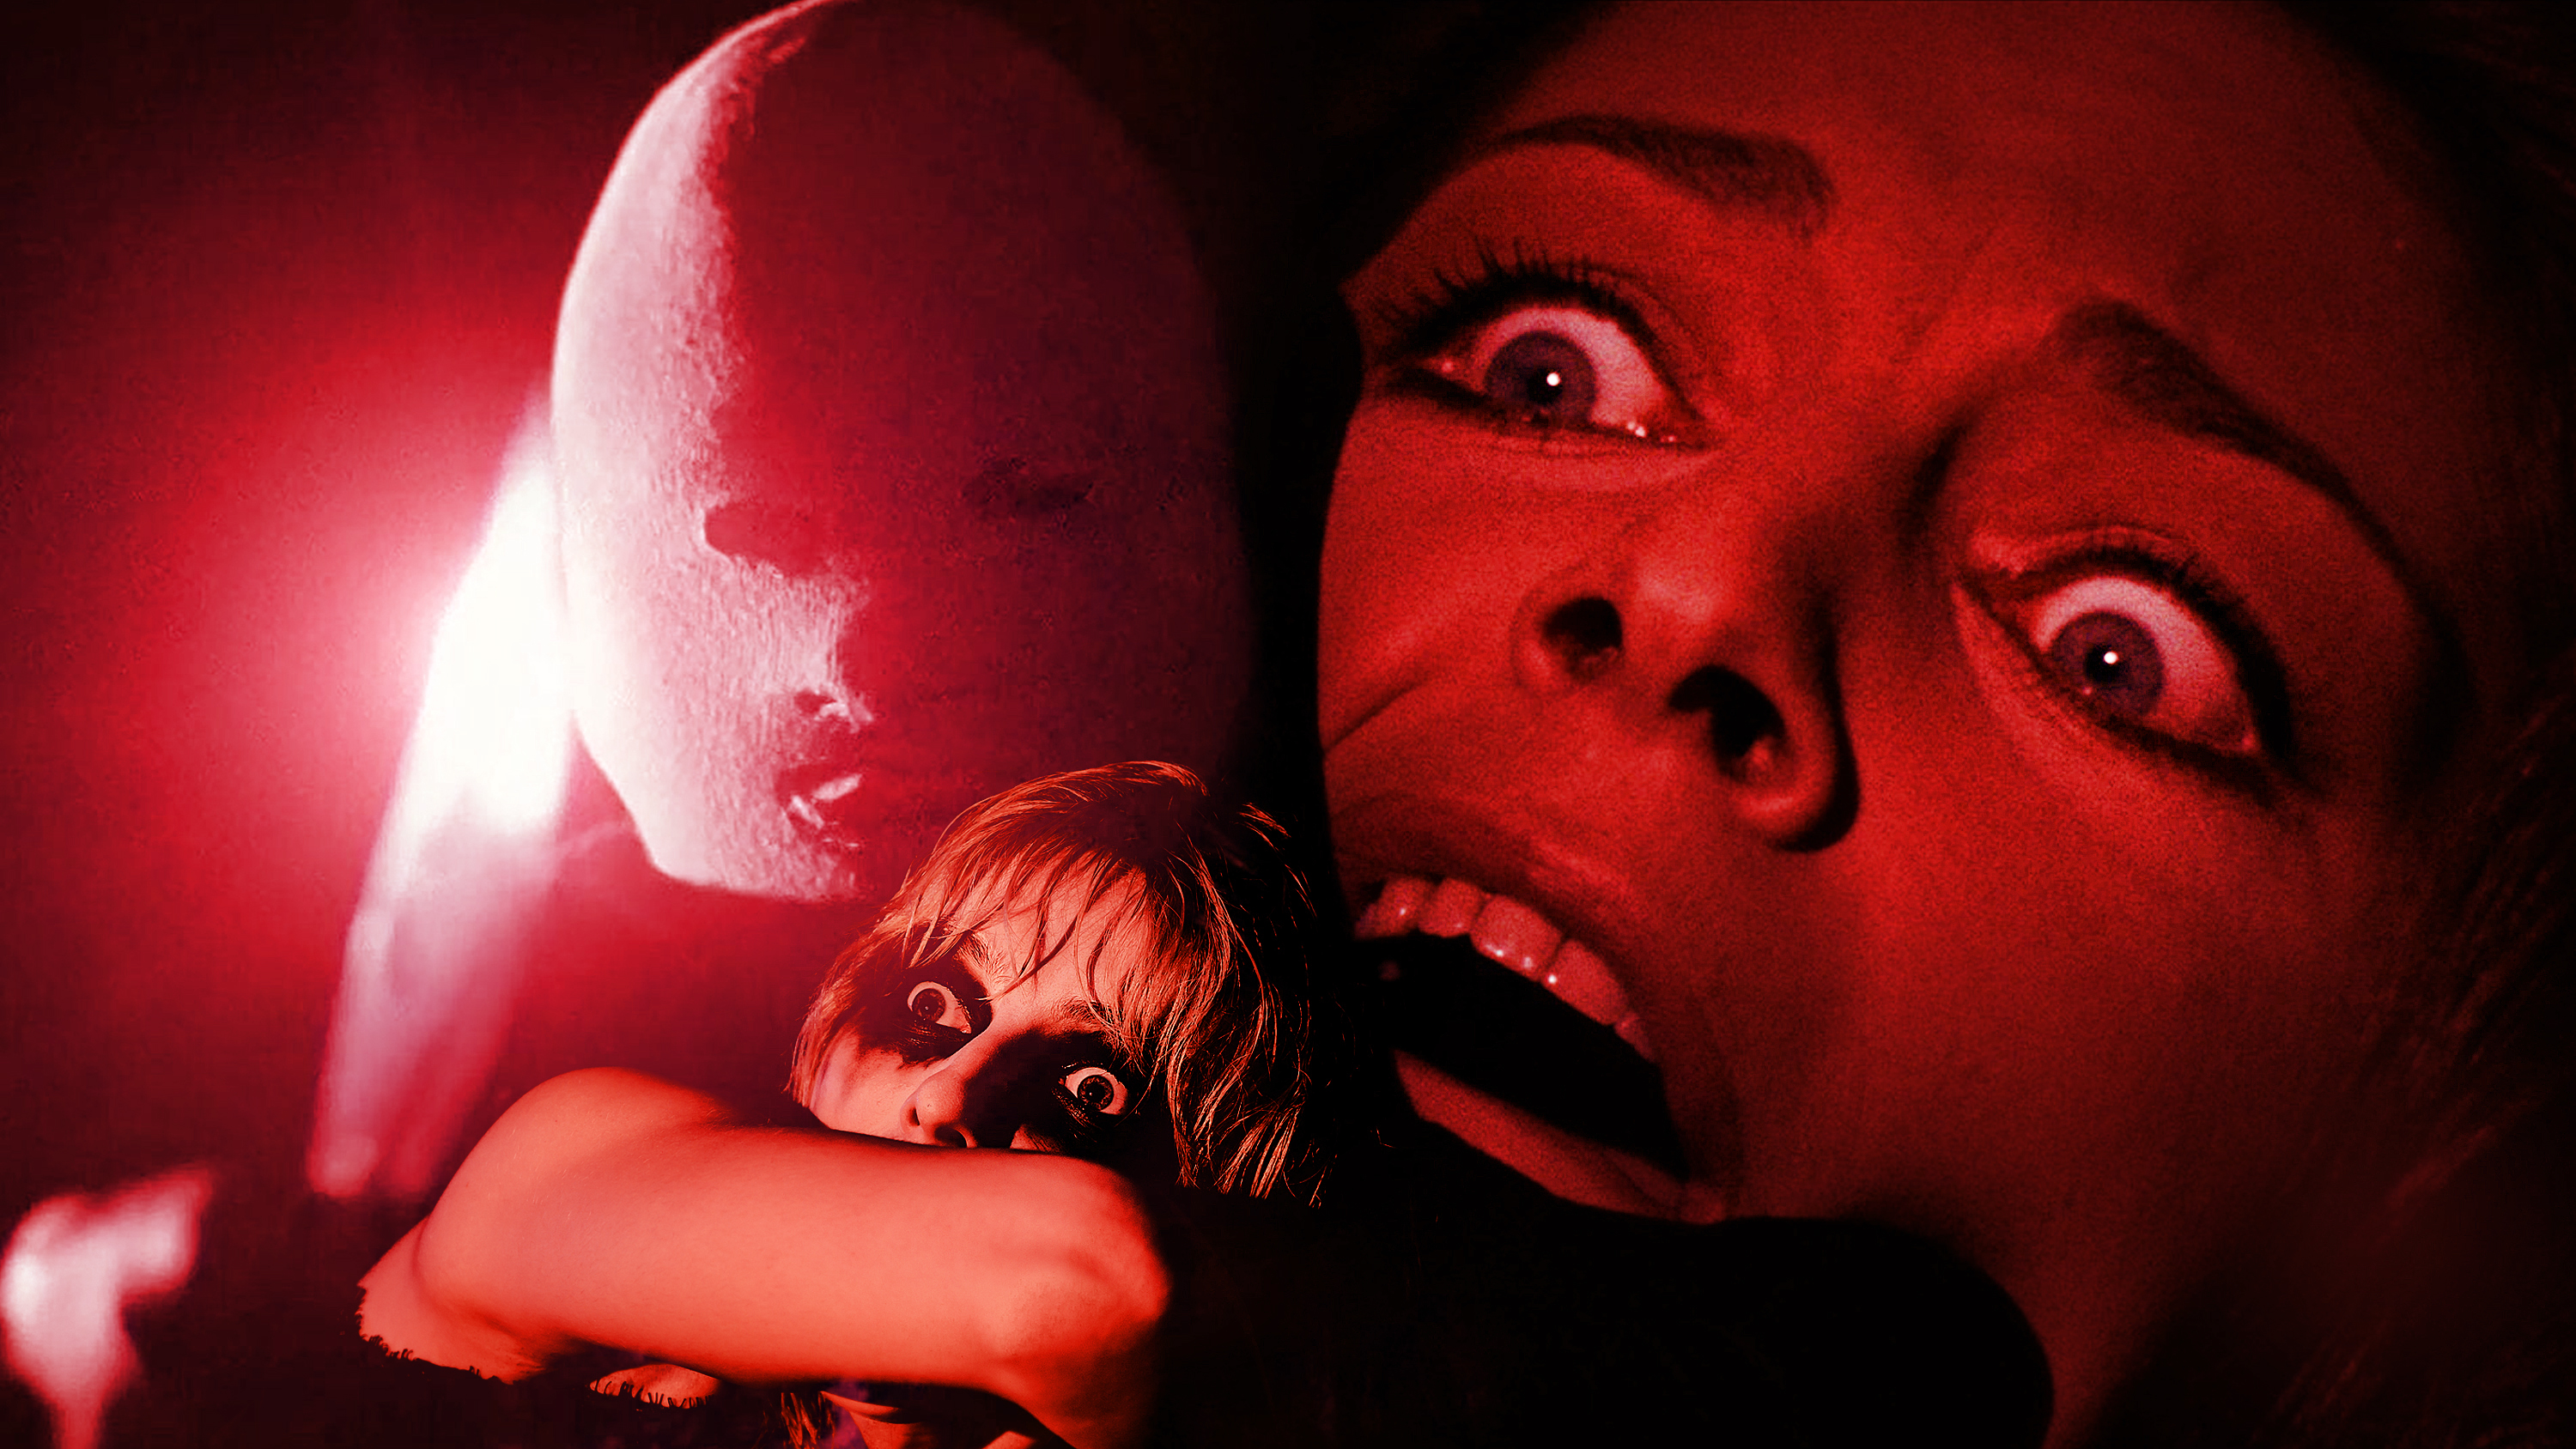 Photo montage of two women looking terrified and a masked person holding a glinting knife